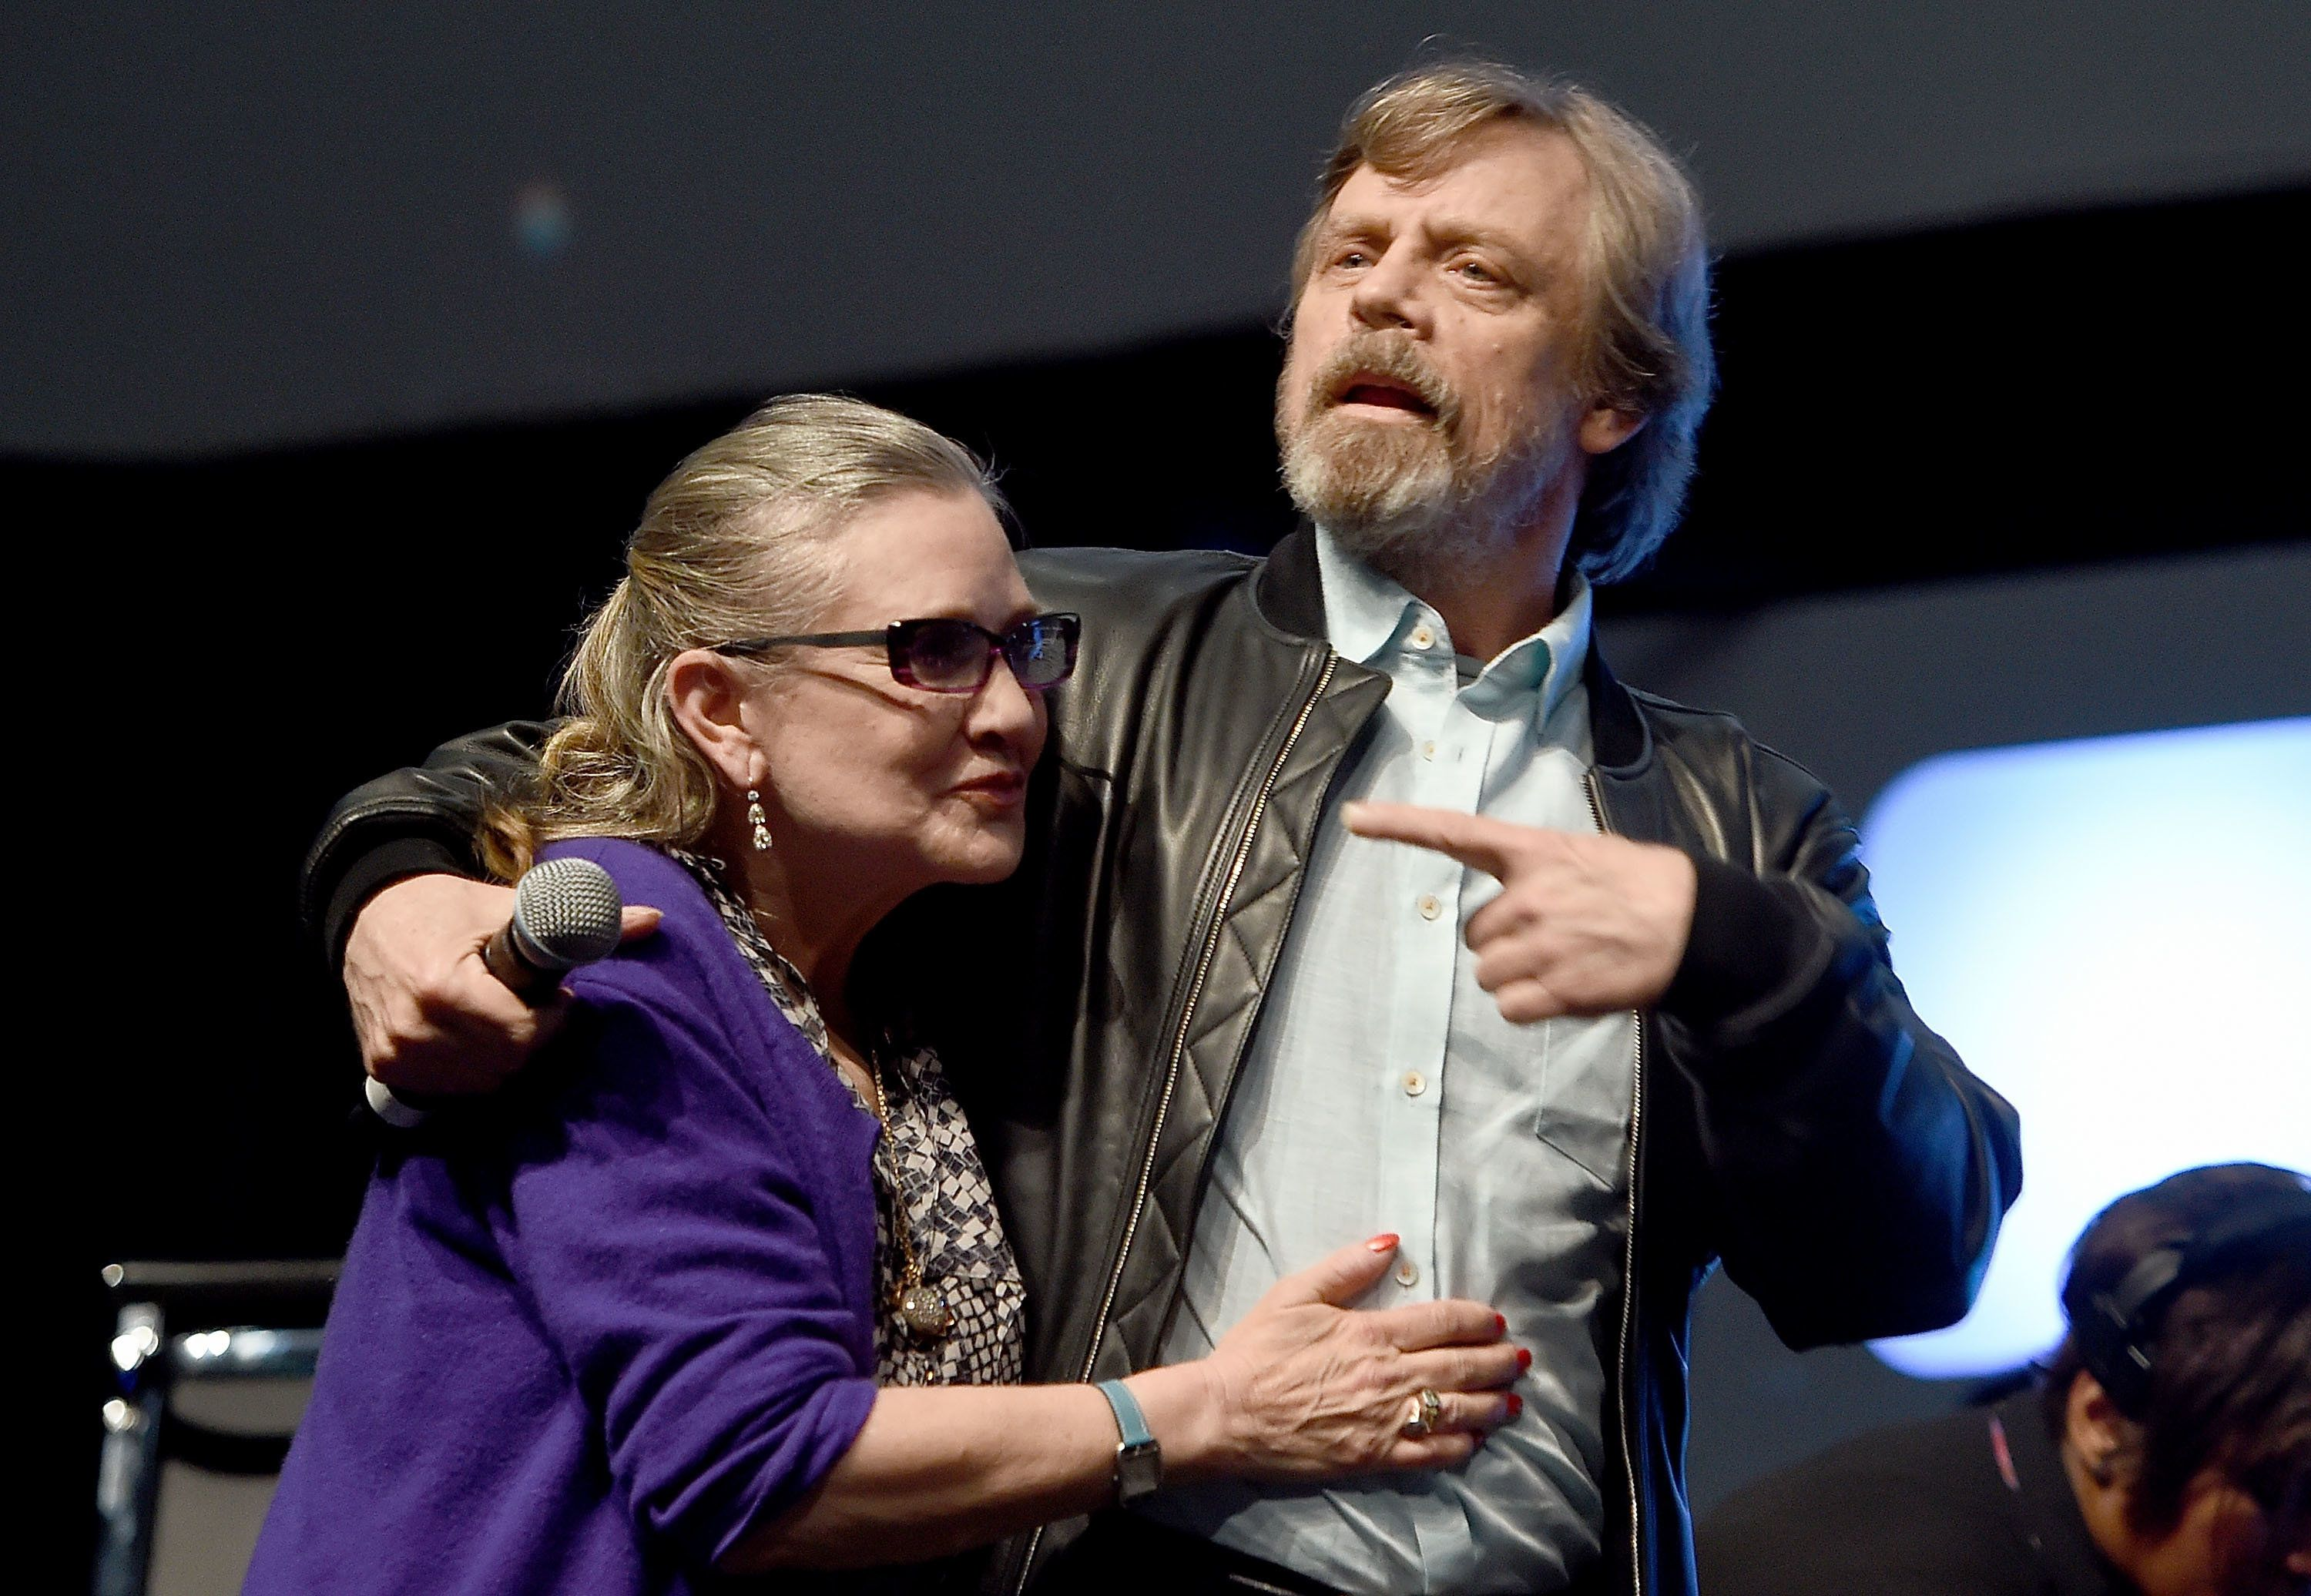 Mark Hamill Says It's 'Bittersweet' To Face Final 'Star Wars' Chapter Without Carrie